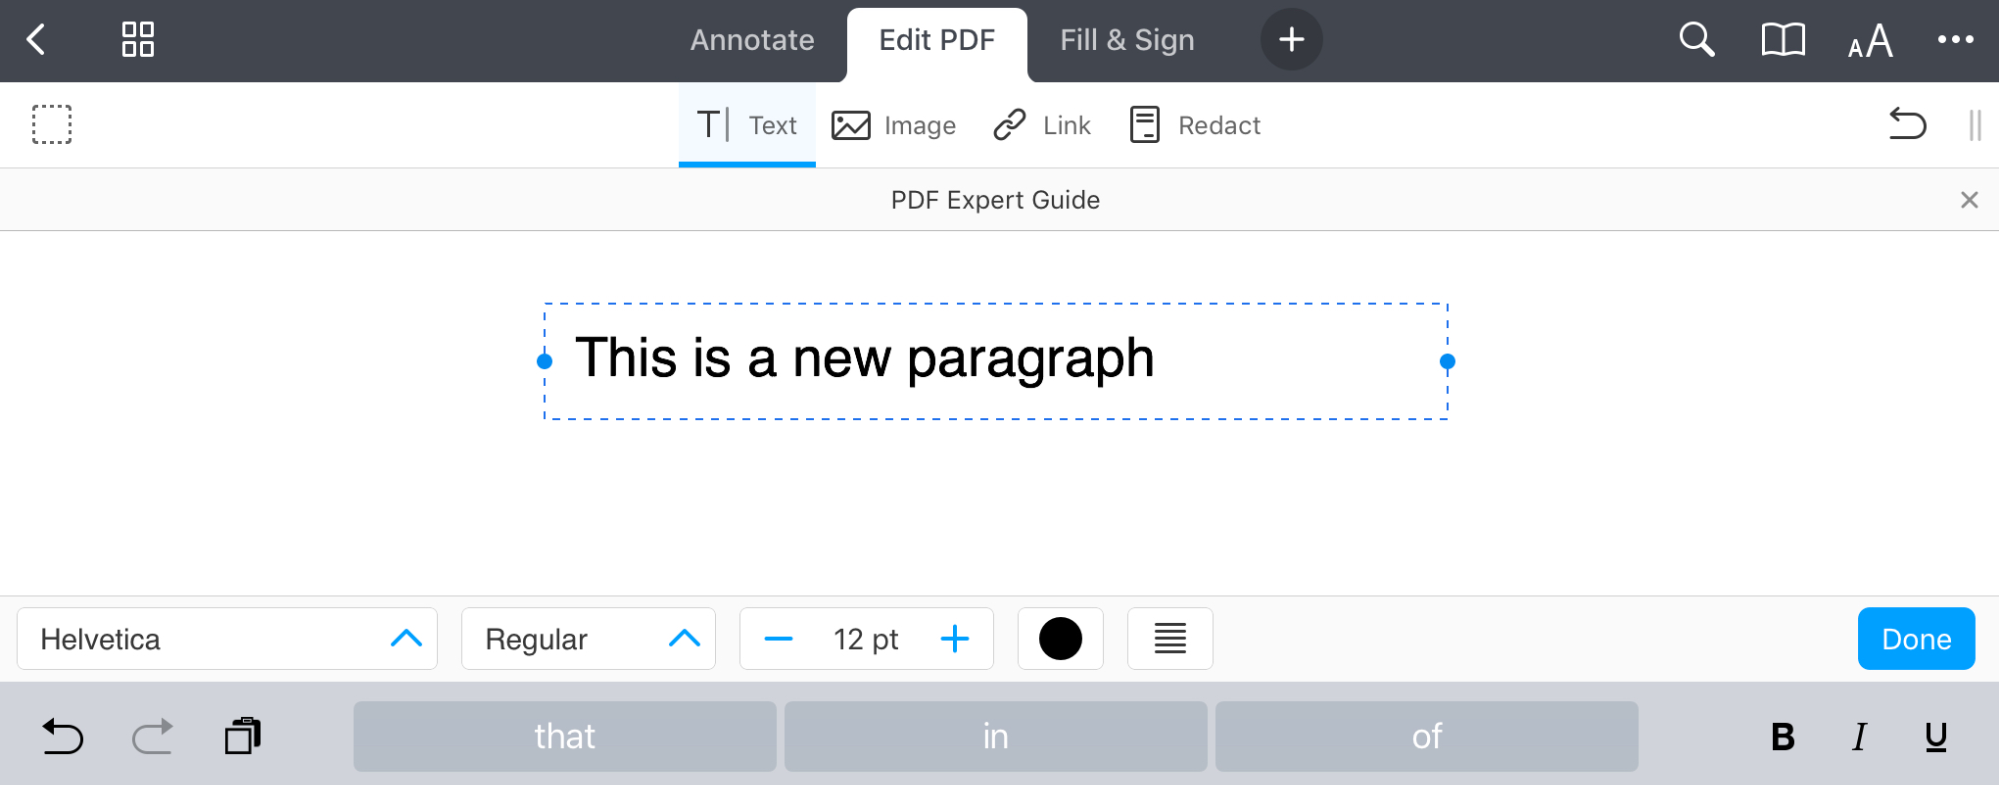 Edit PDF on iPhone | How to edit PDF on iPad and iPhone